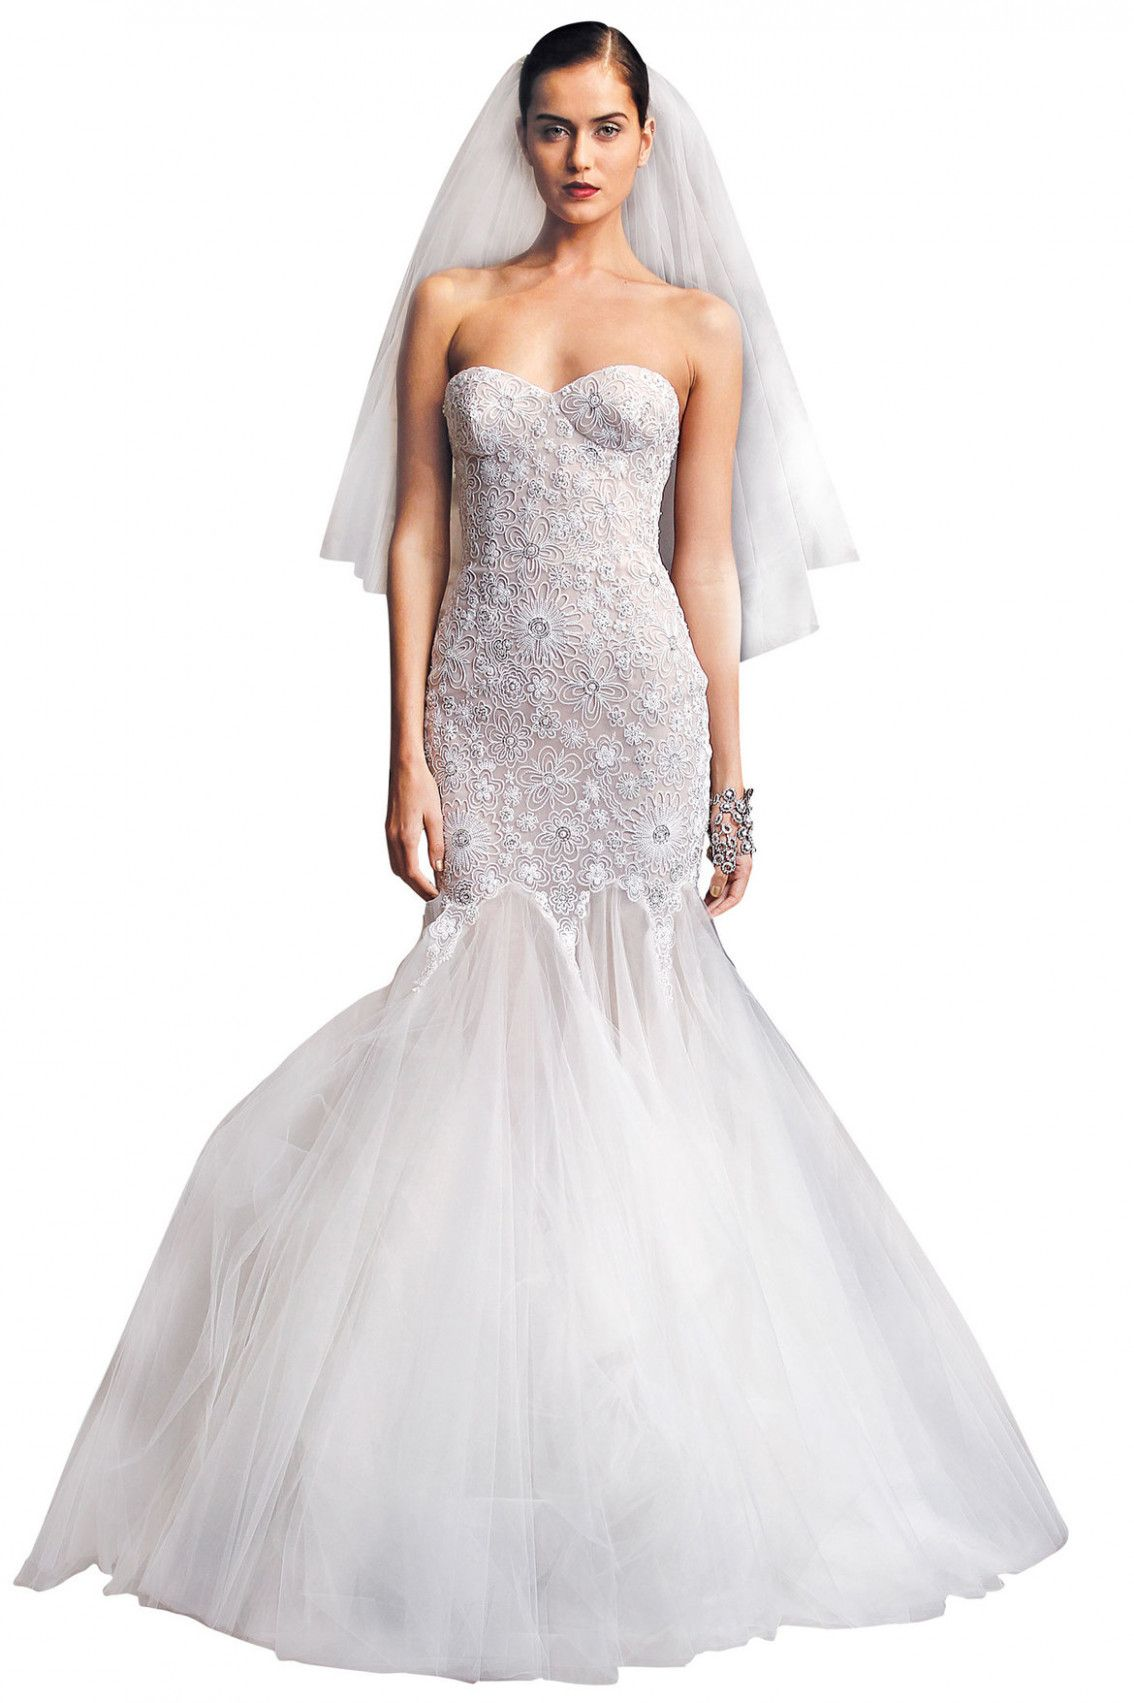 Wedding dress for your body  Best Wedding Dress for Your Body Type BridalGuide  wedding dress